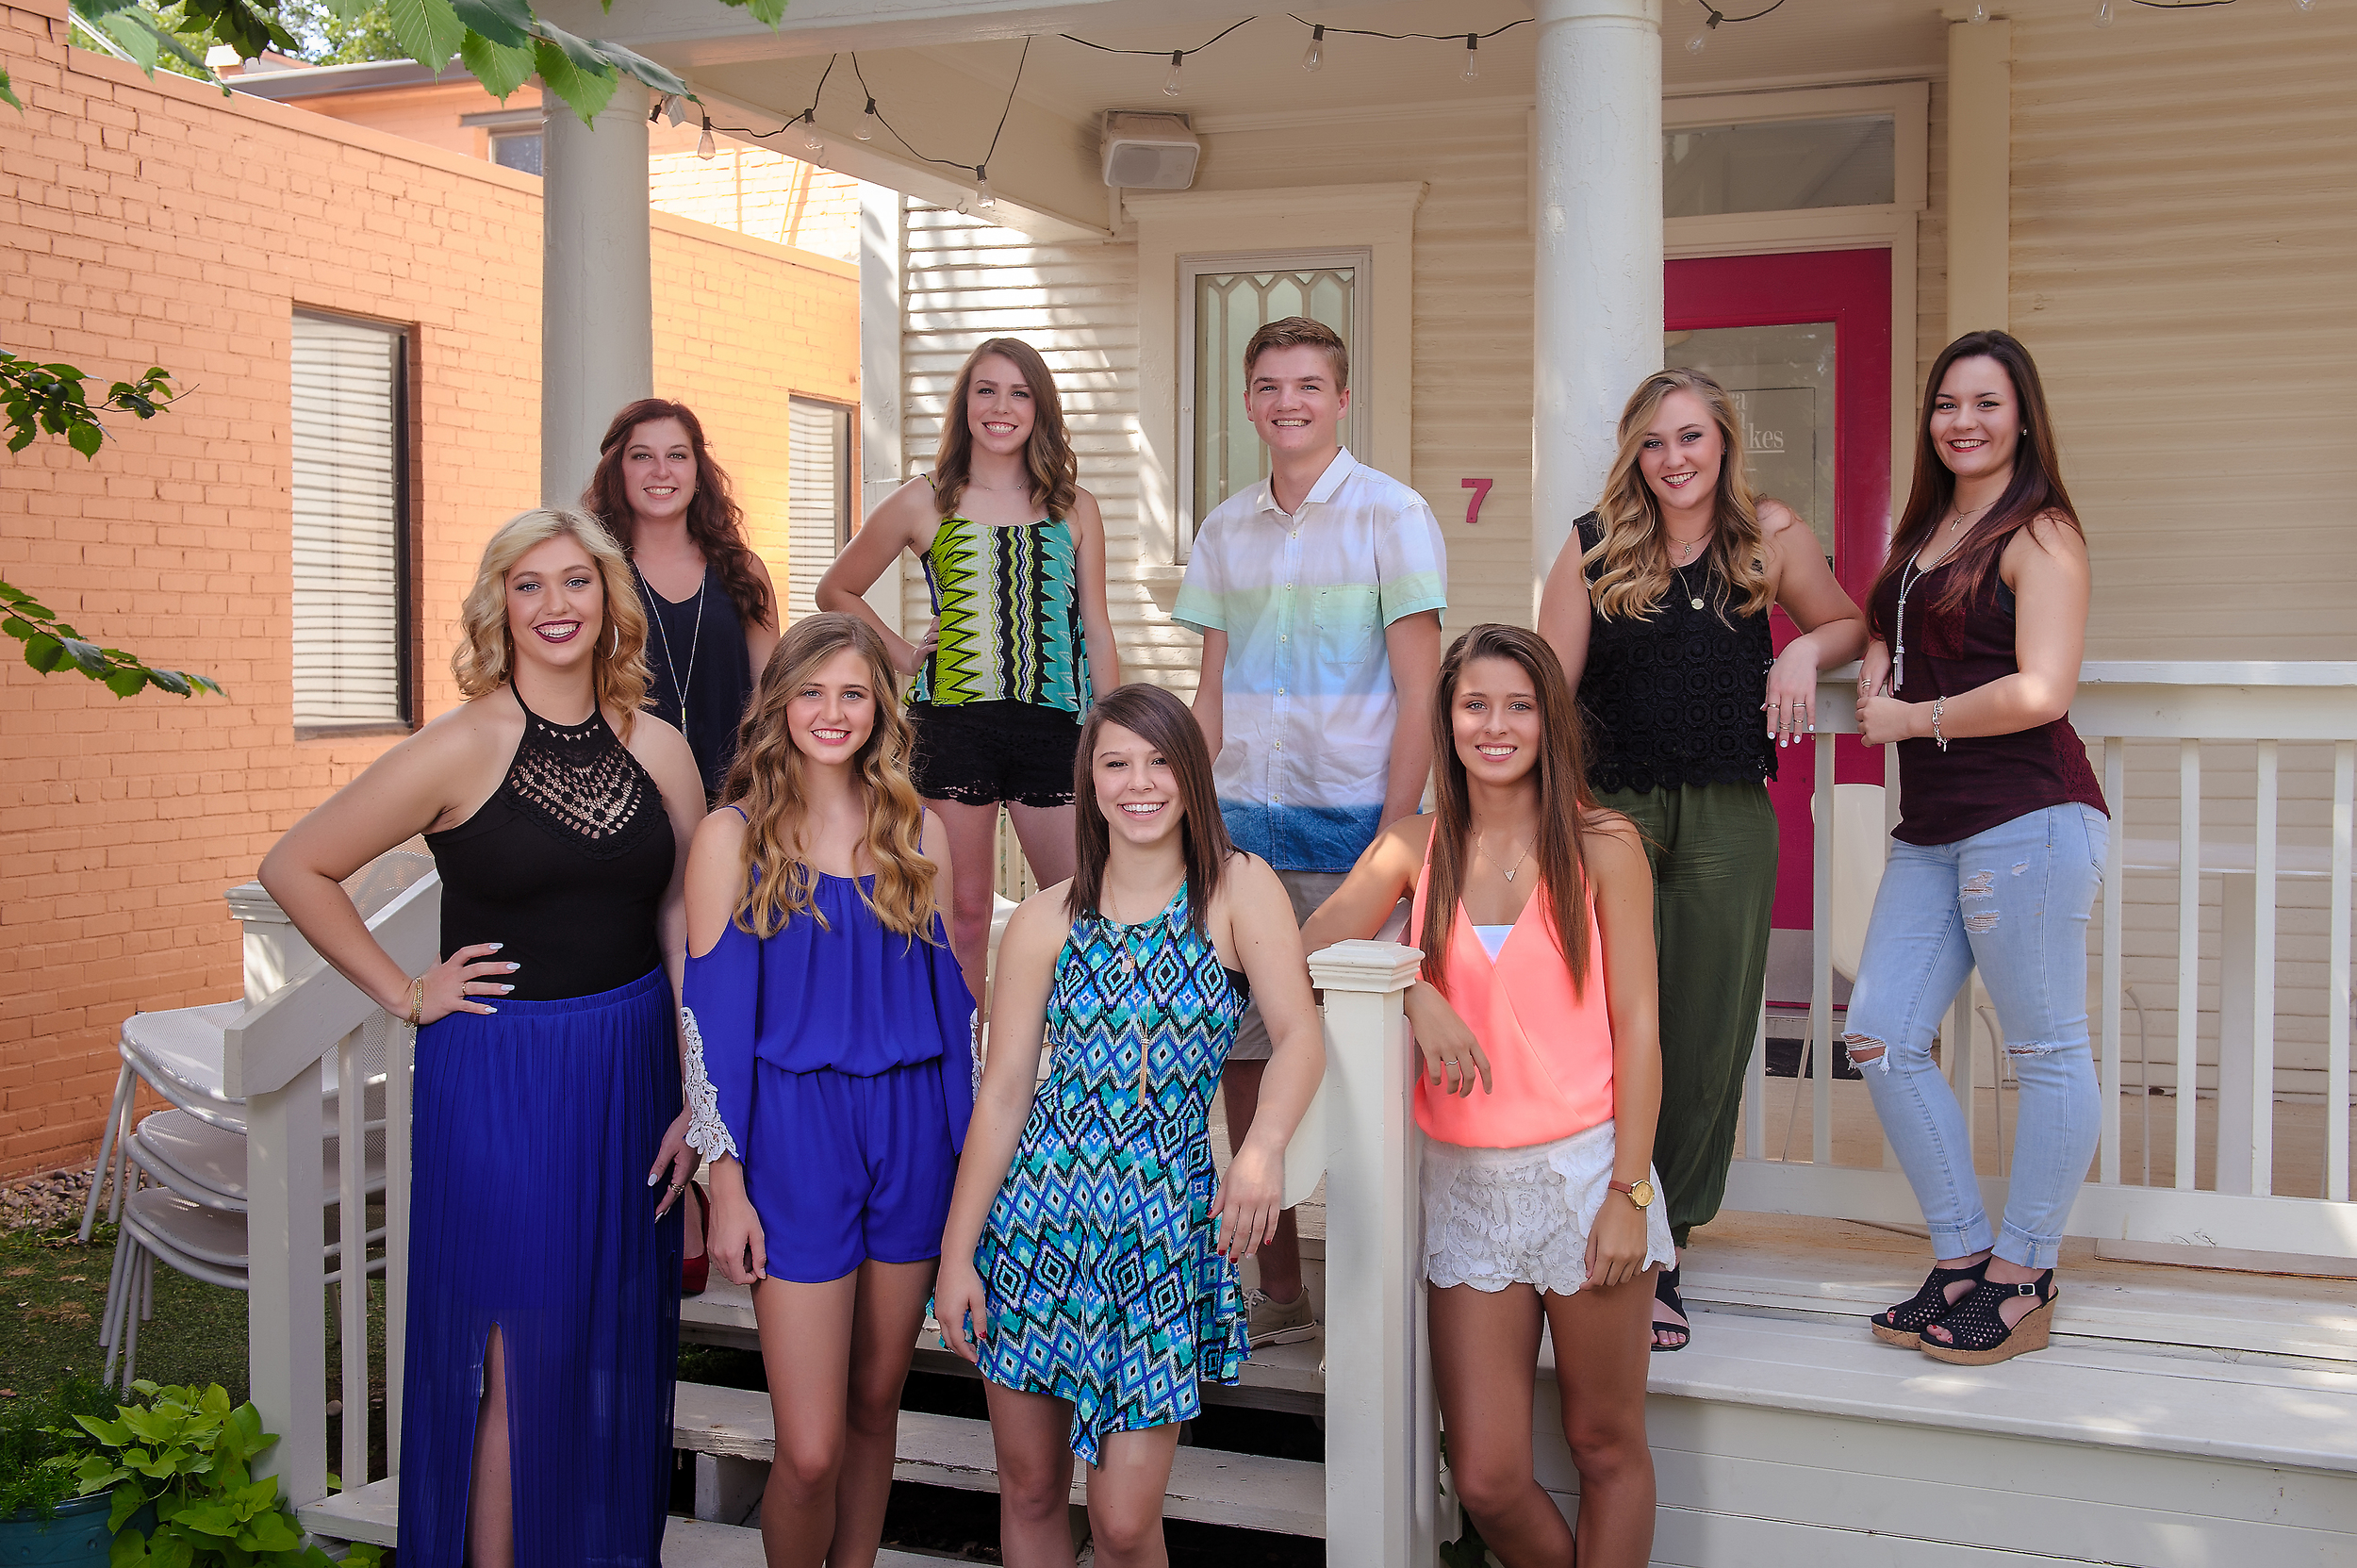 2016 Senior Models for Trawick Images - Look for these fine people at your school for details on getting your session booked.